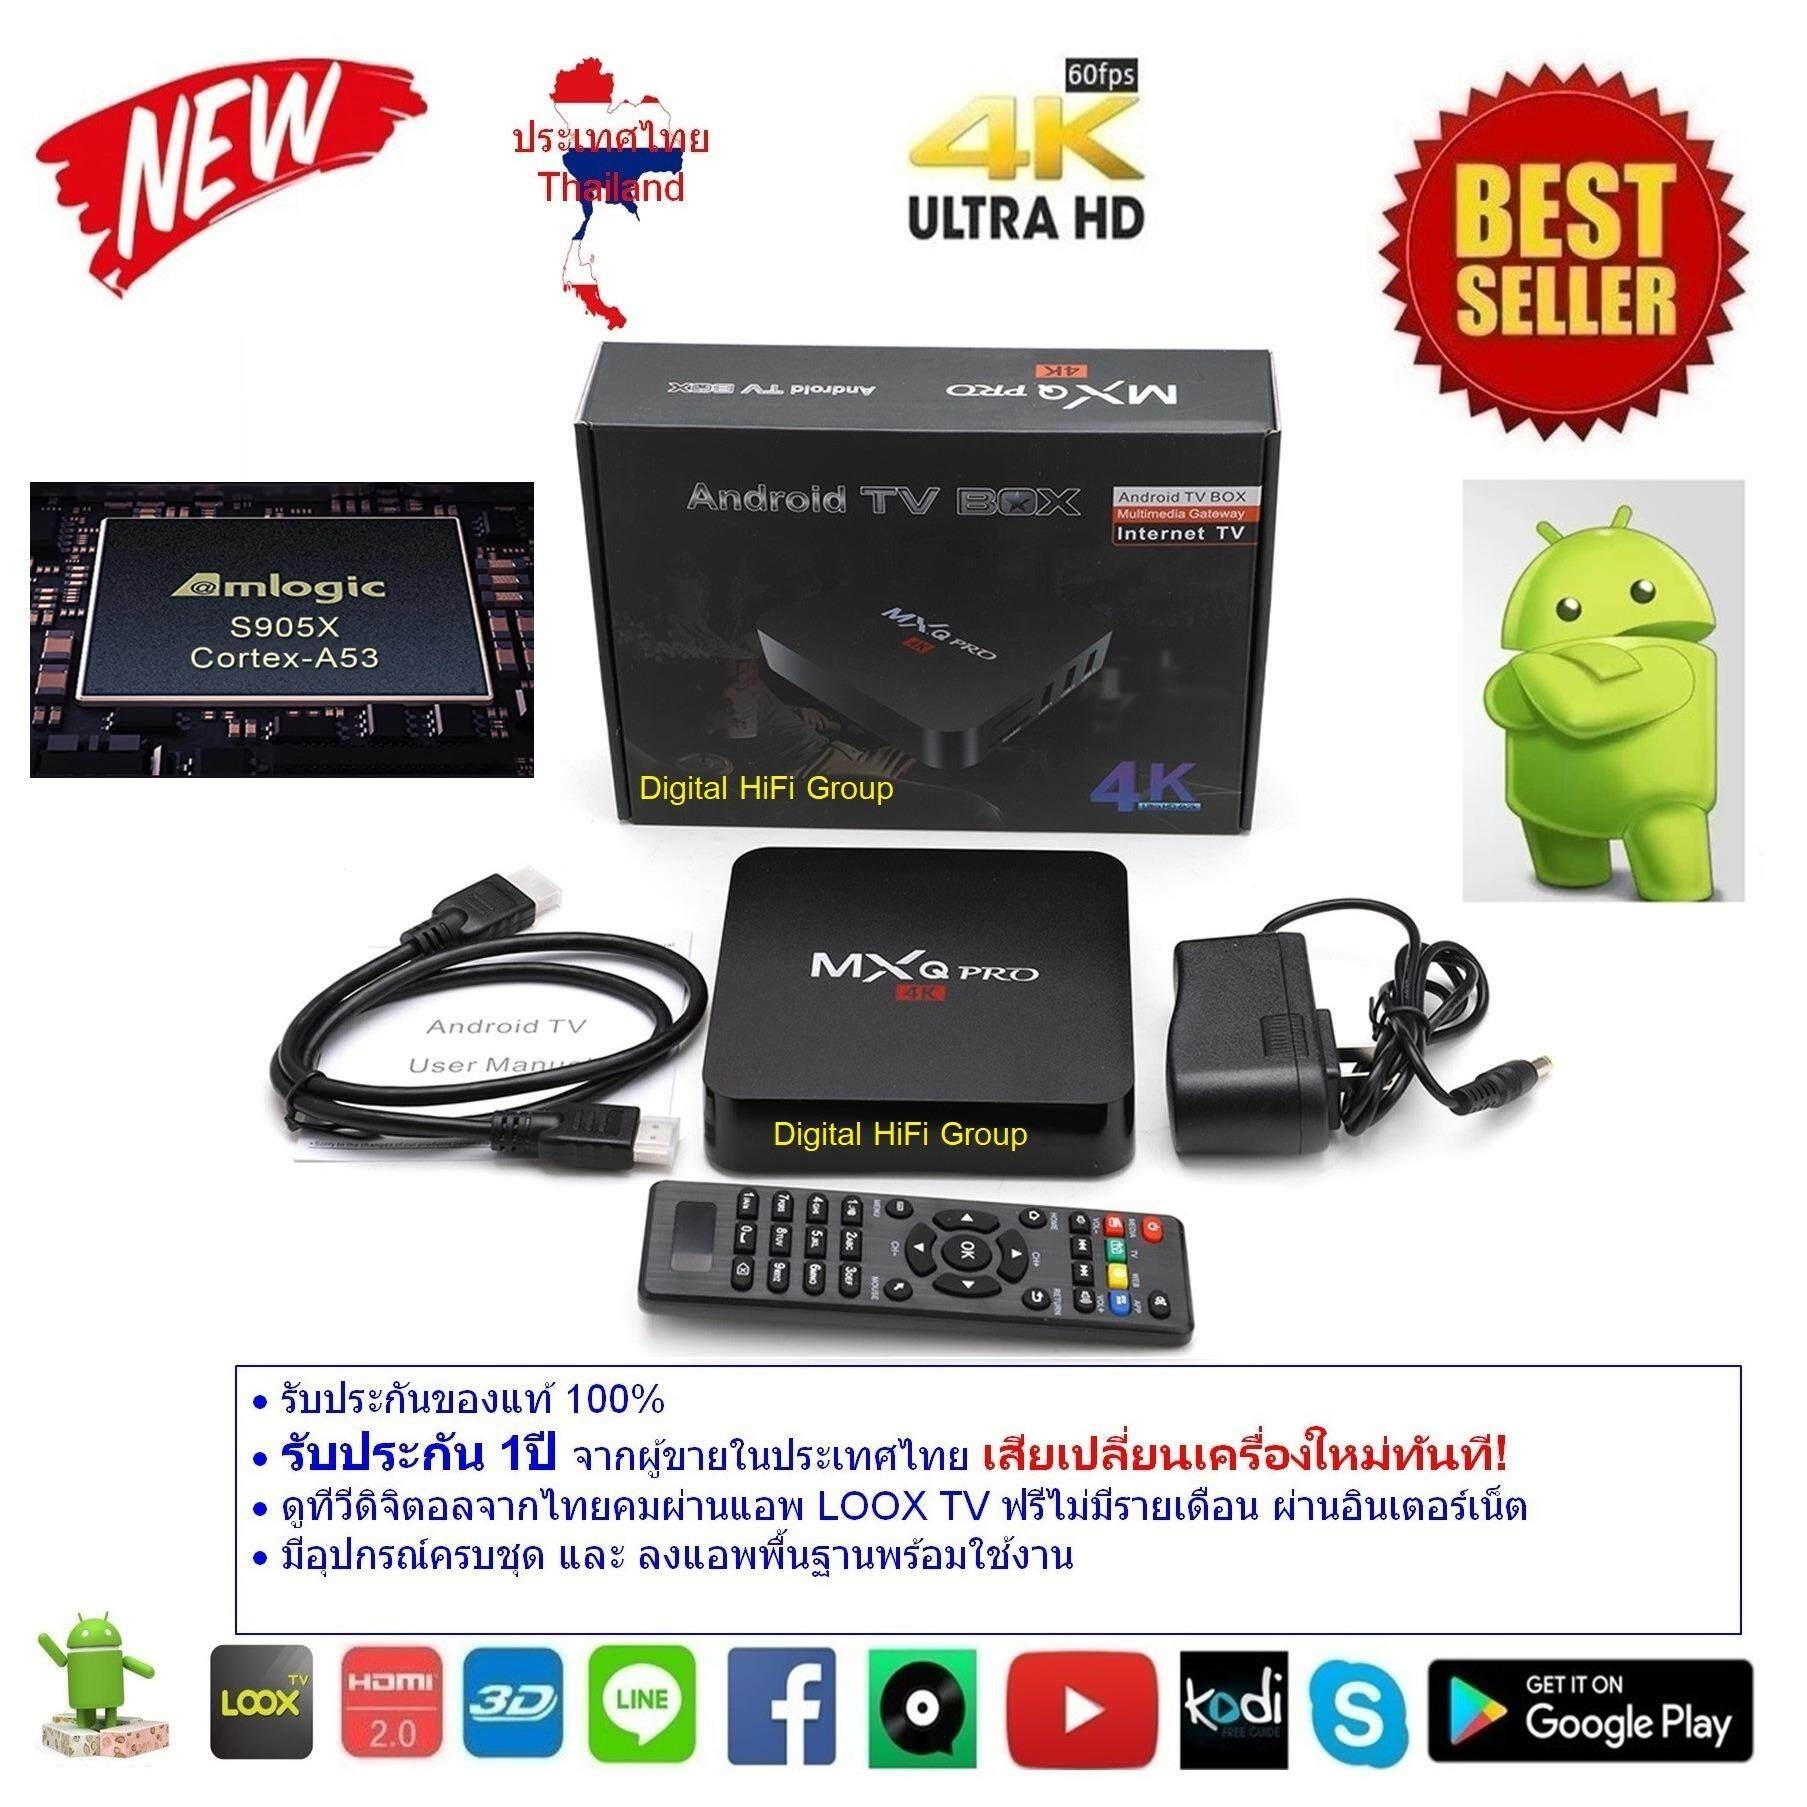 สอนใช้งาน  กำแพงเพชร Android Smart Box MXQ Pro UHD 4K 64Bit Quad Core Ram 1GB DDR3 Android Marshmallow 6.0